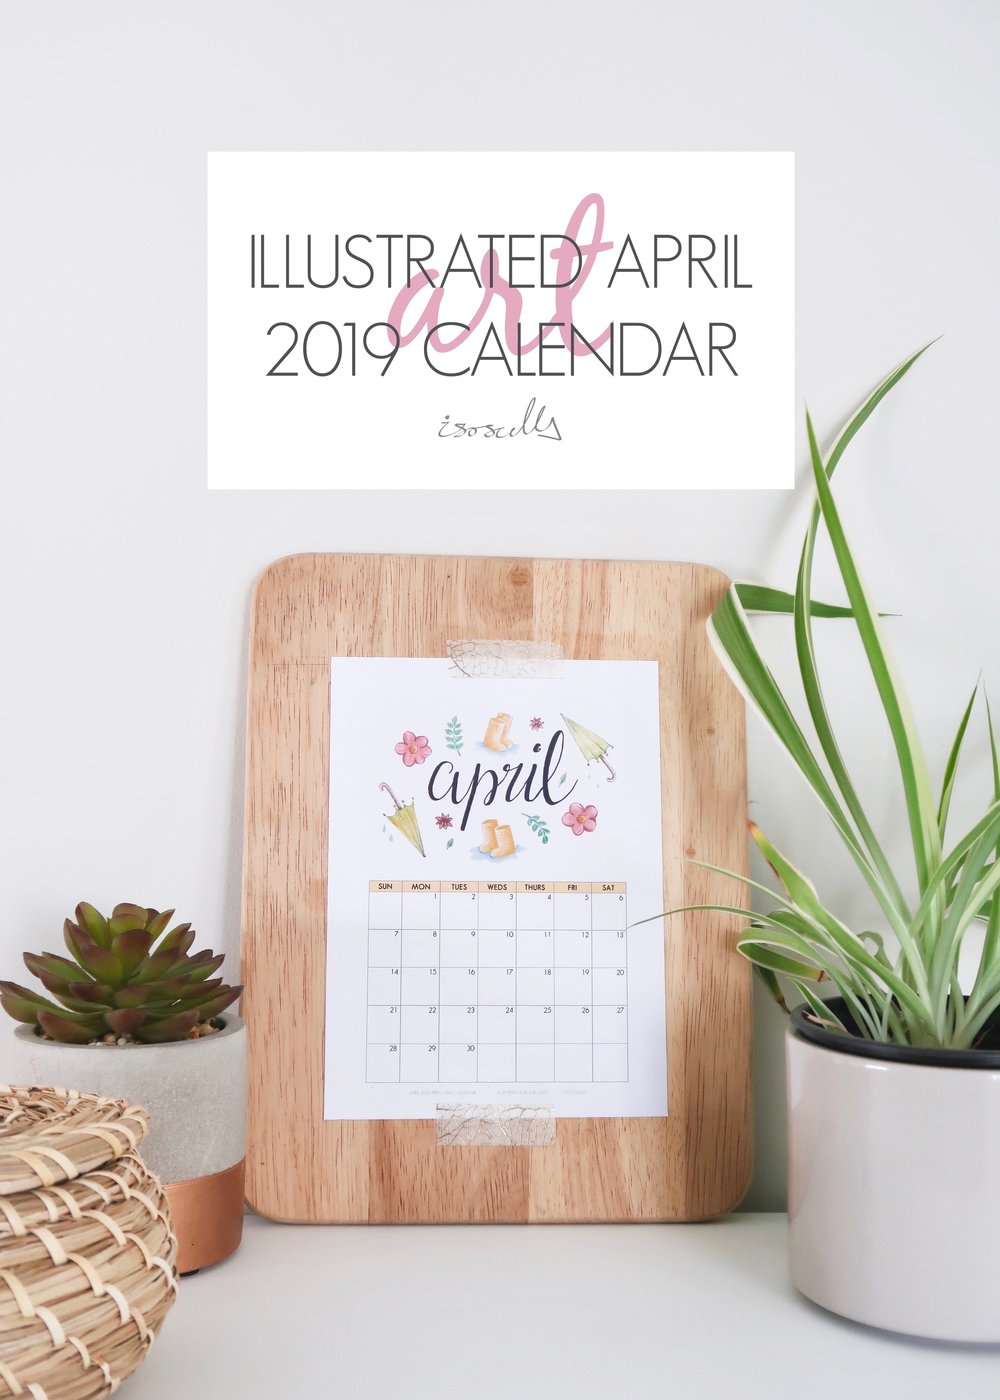 Illustrated April 2019 Calendar by Isoscella